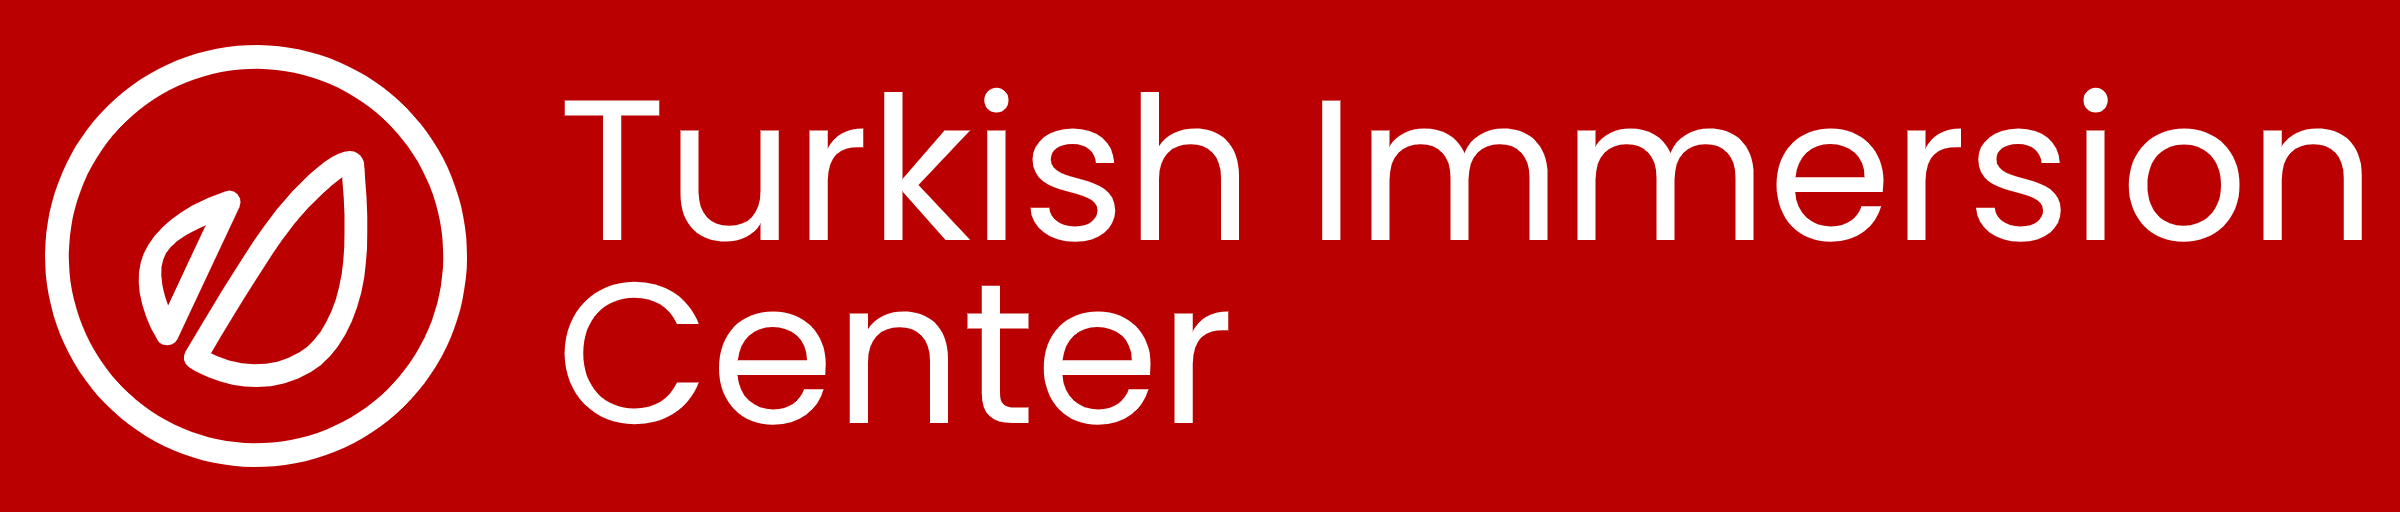 Turkish Immersion Center